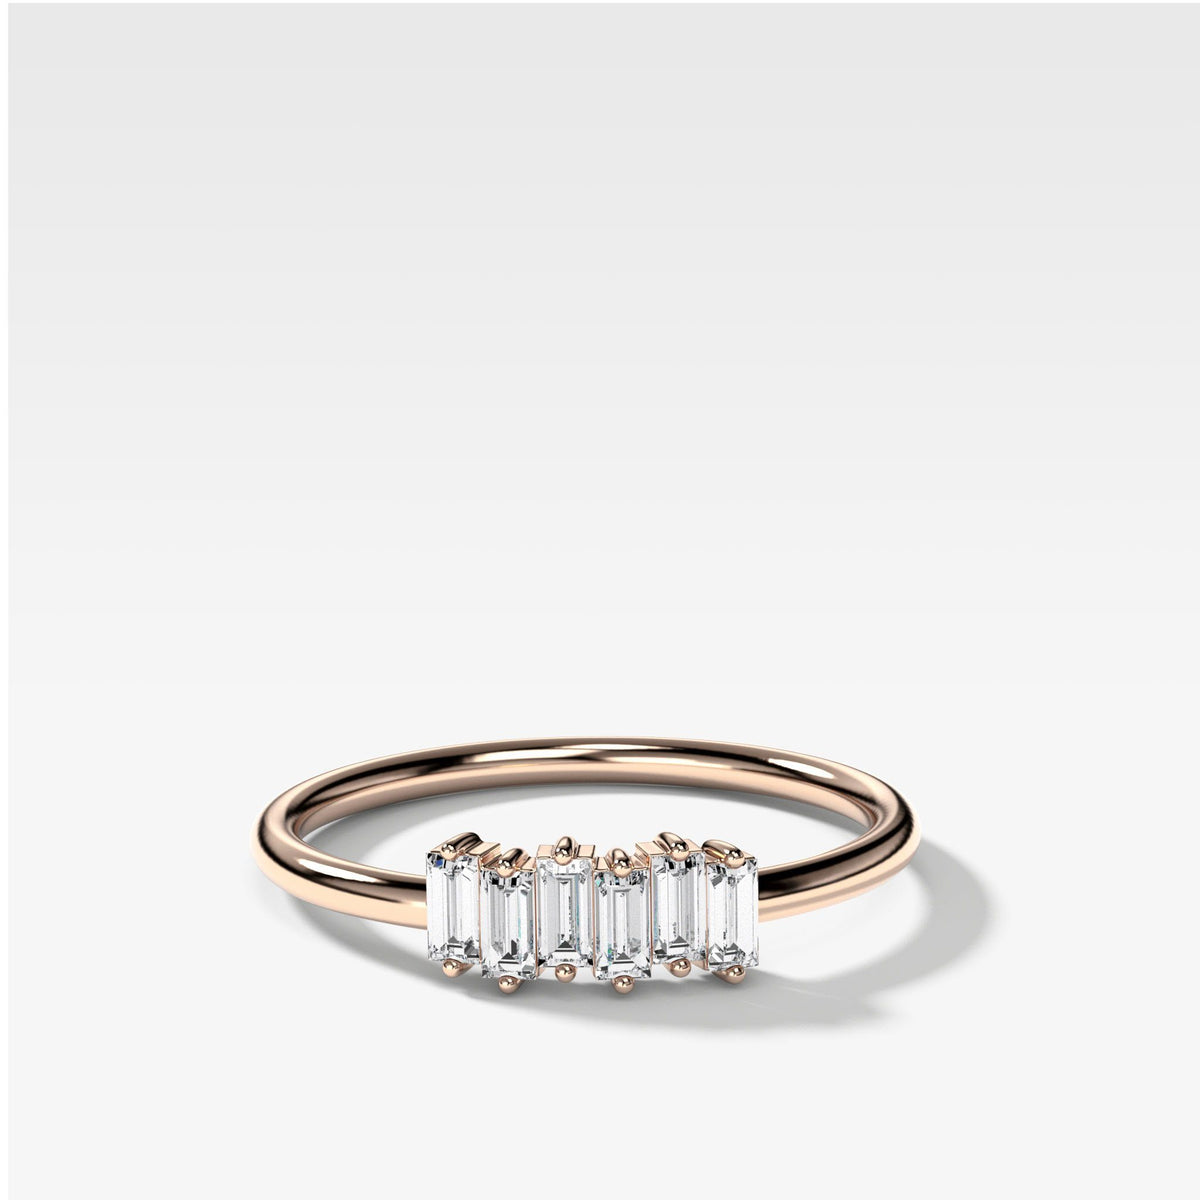 Petite Baguette Stacker Band available in Rose Gold by Good Stone